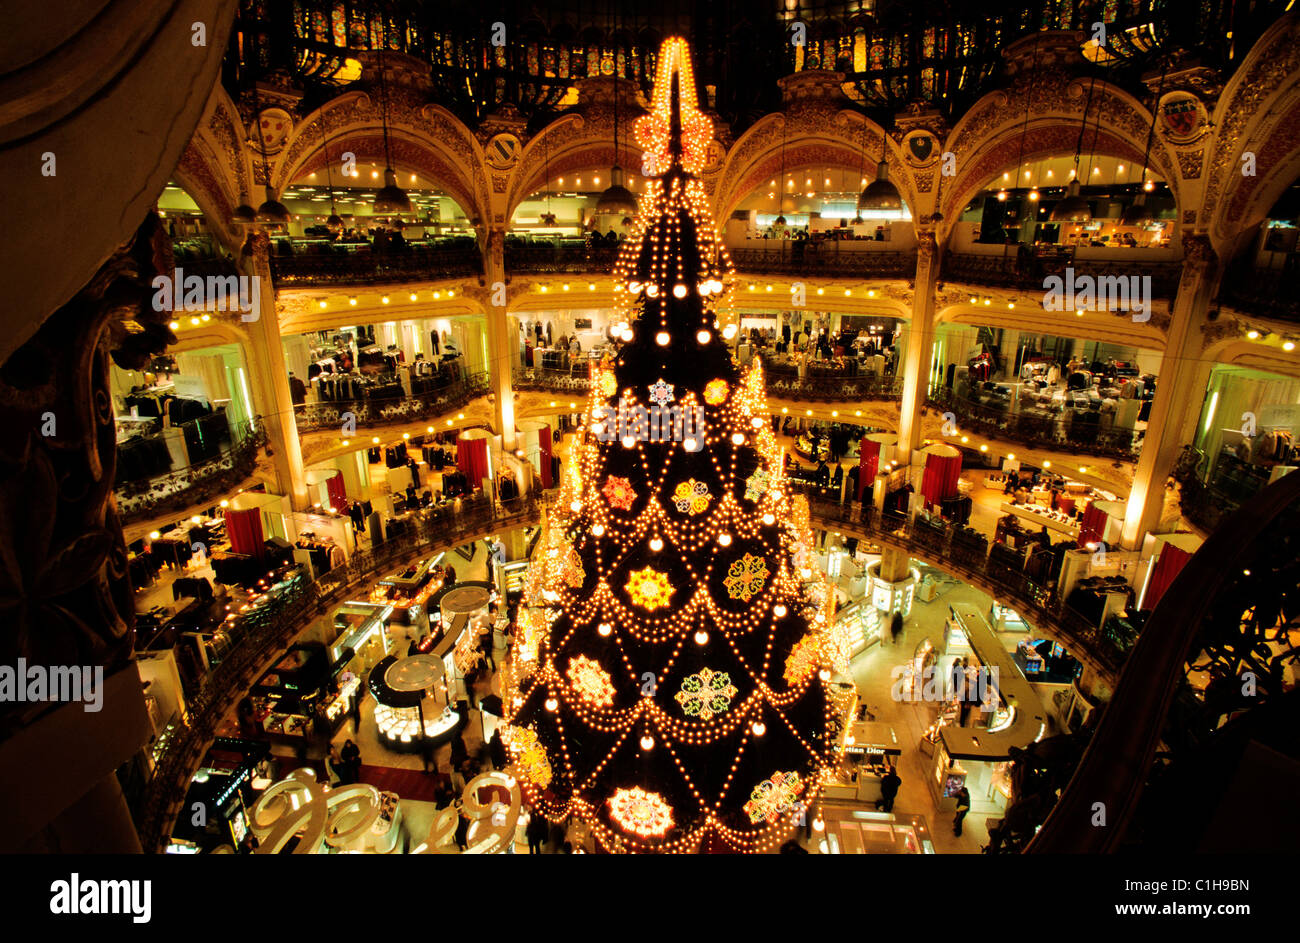 France, Paris, Christmas tree in Galeries Lafayette department ...